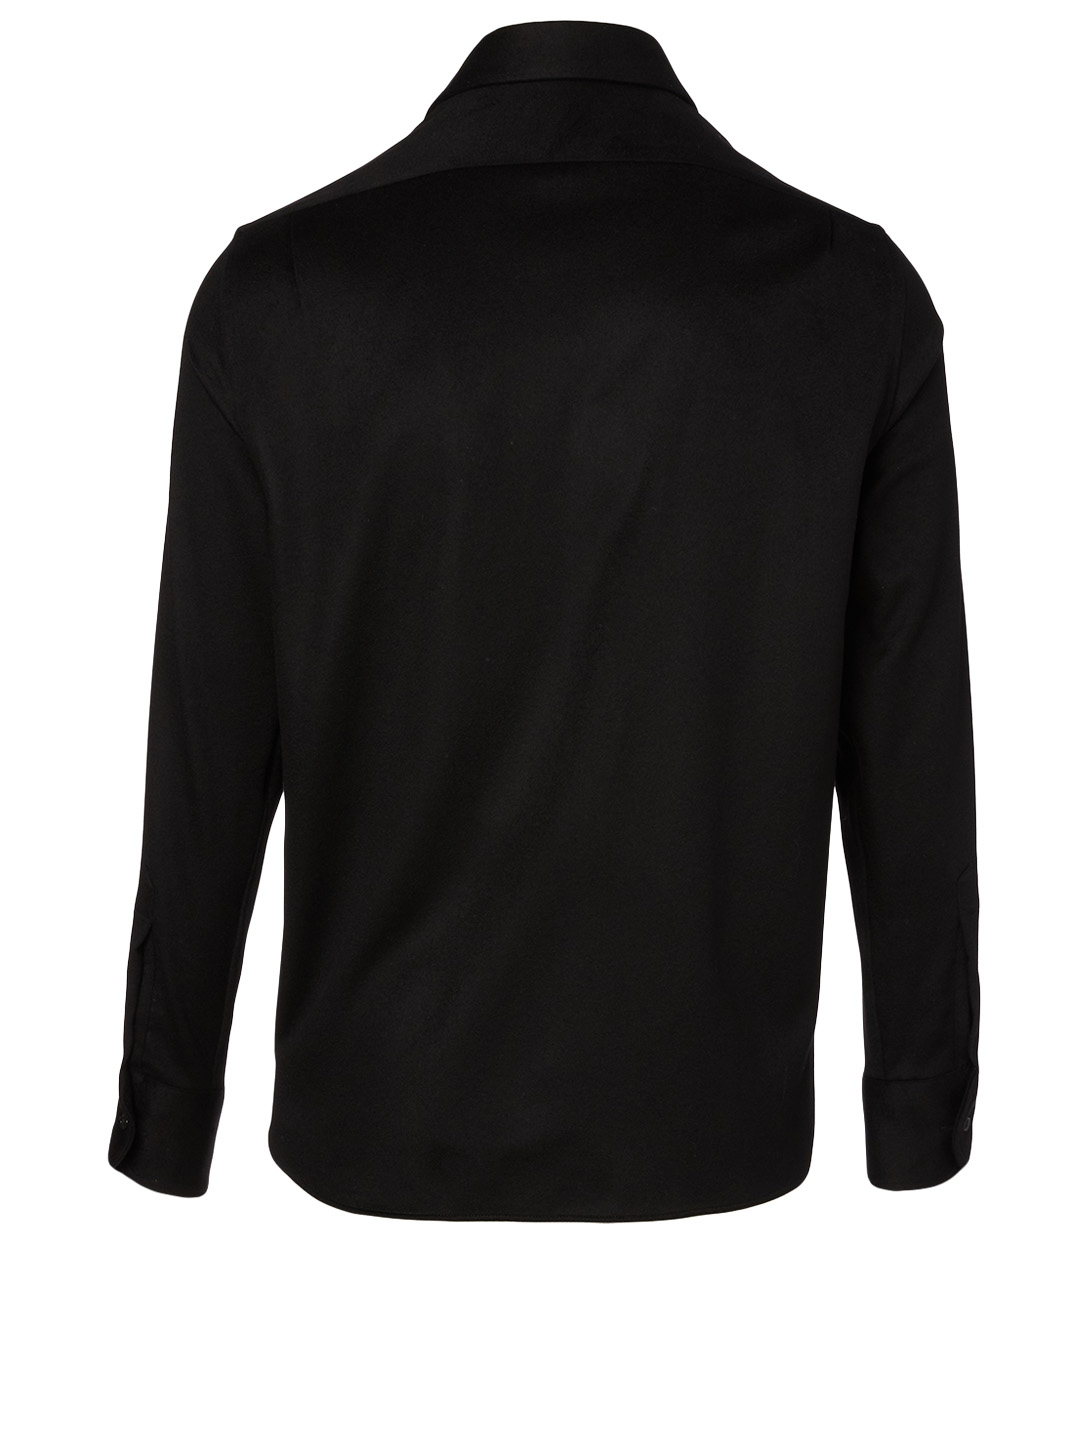 THE ROW Robin Cashmere Shirt Men's Black